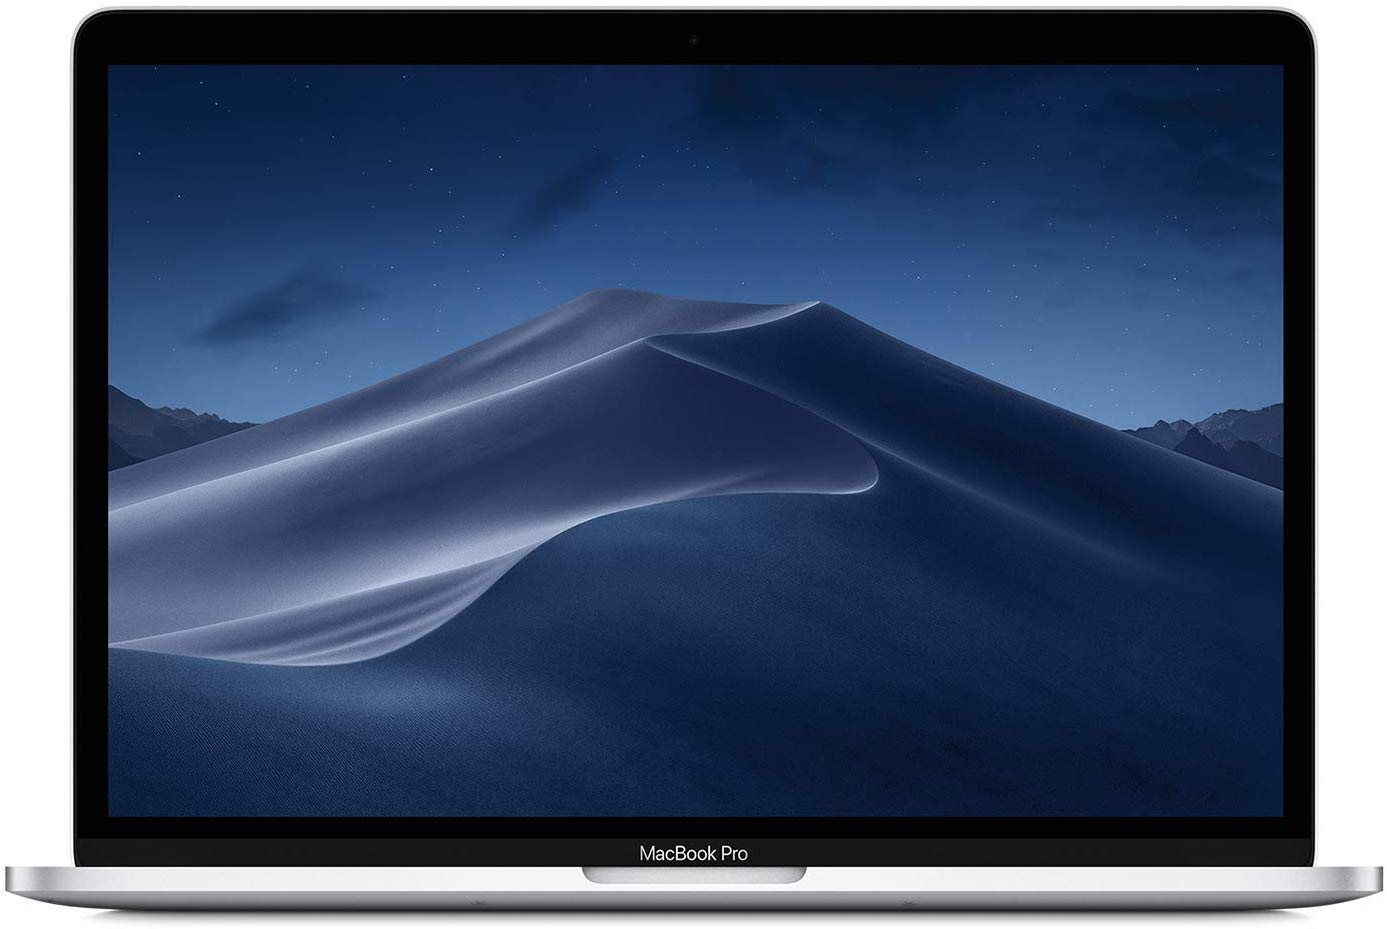 Apple MacBook Pro Only $999! (was $1299)